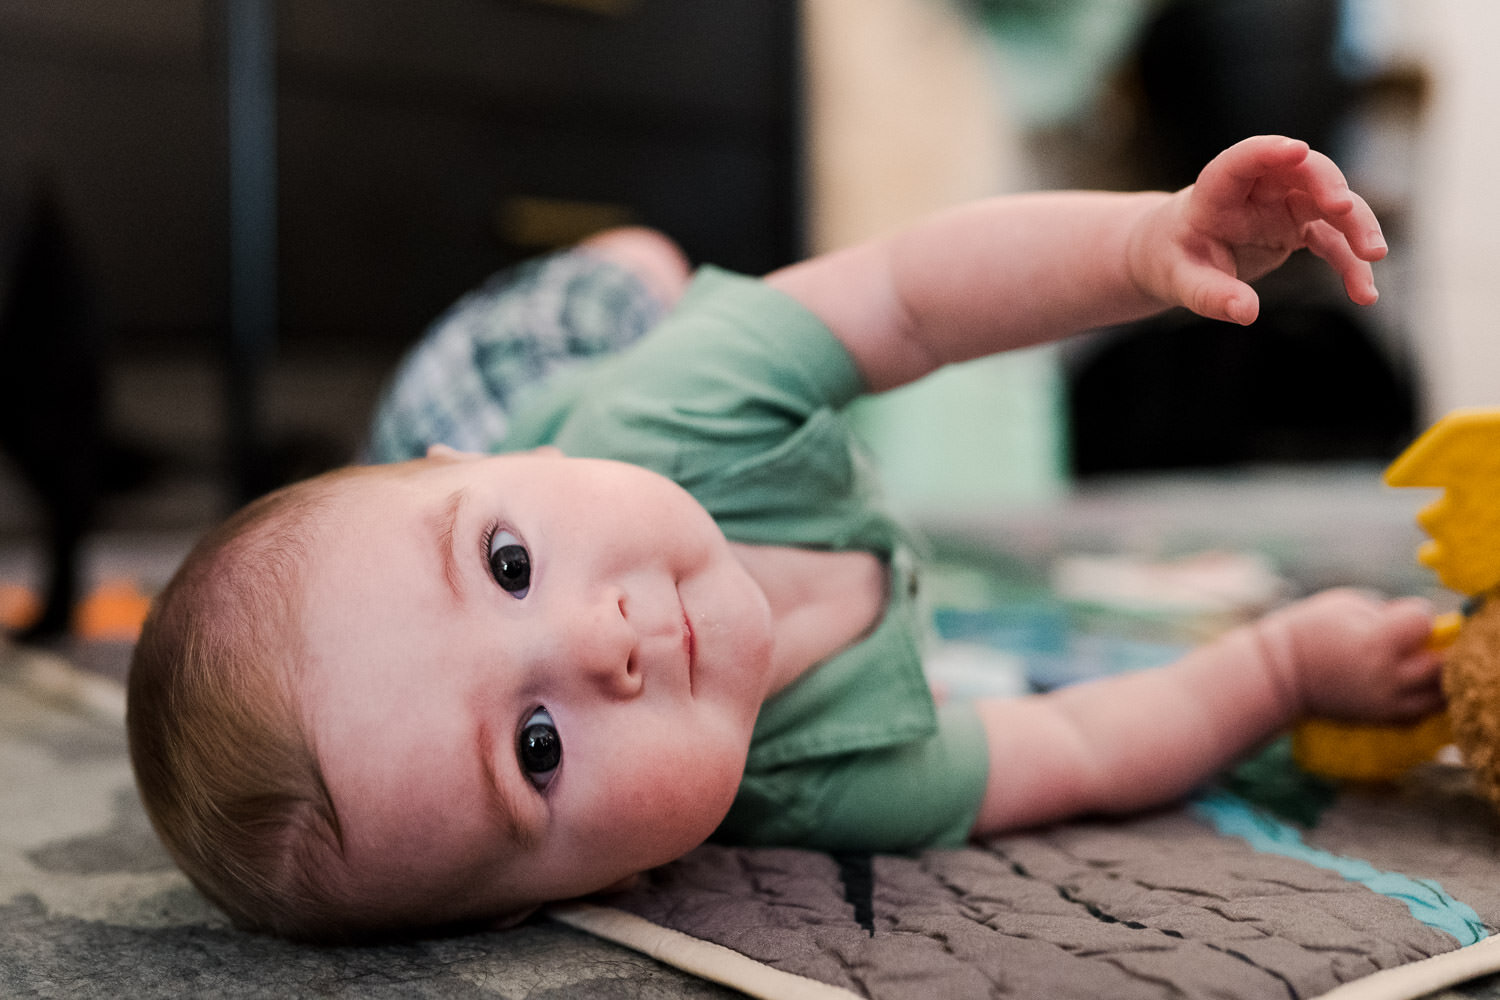 A baby rolls on his play mat.